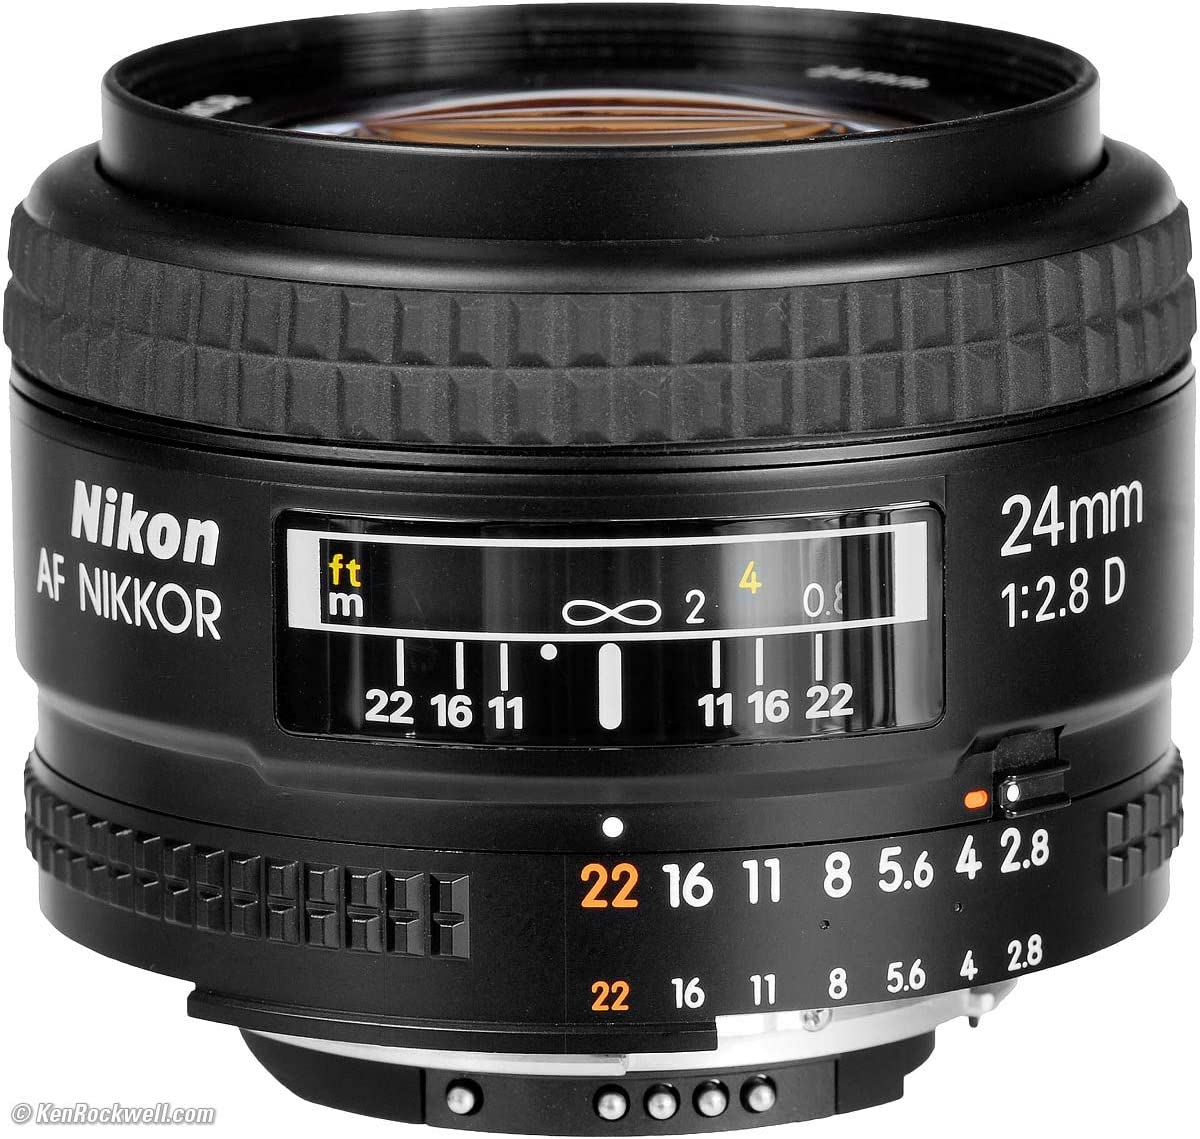 Nikon AF FX NIKKOR 24mm f/2.8D Fixed Zoom Lens with Auto Focus for Nikon DSLR Cameras (Renewed)